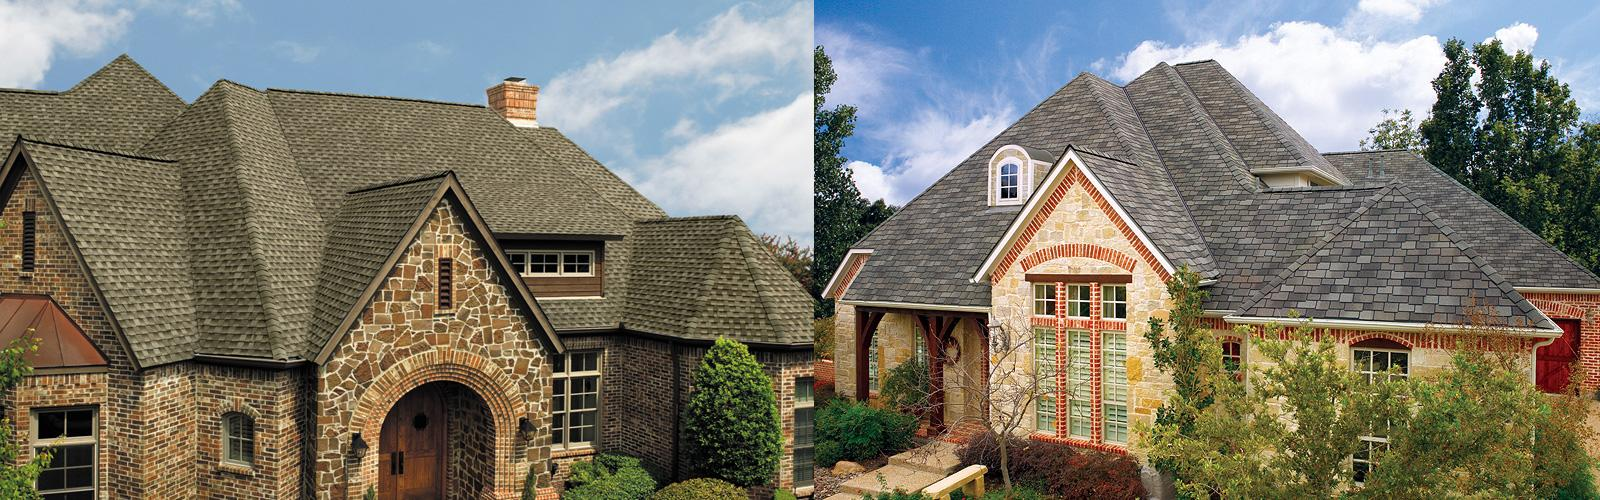 Katy Home Home Katy Roofing